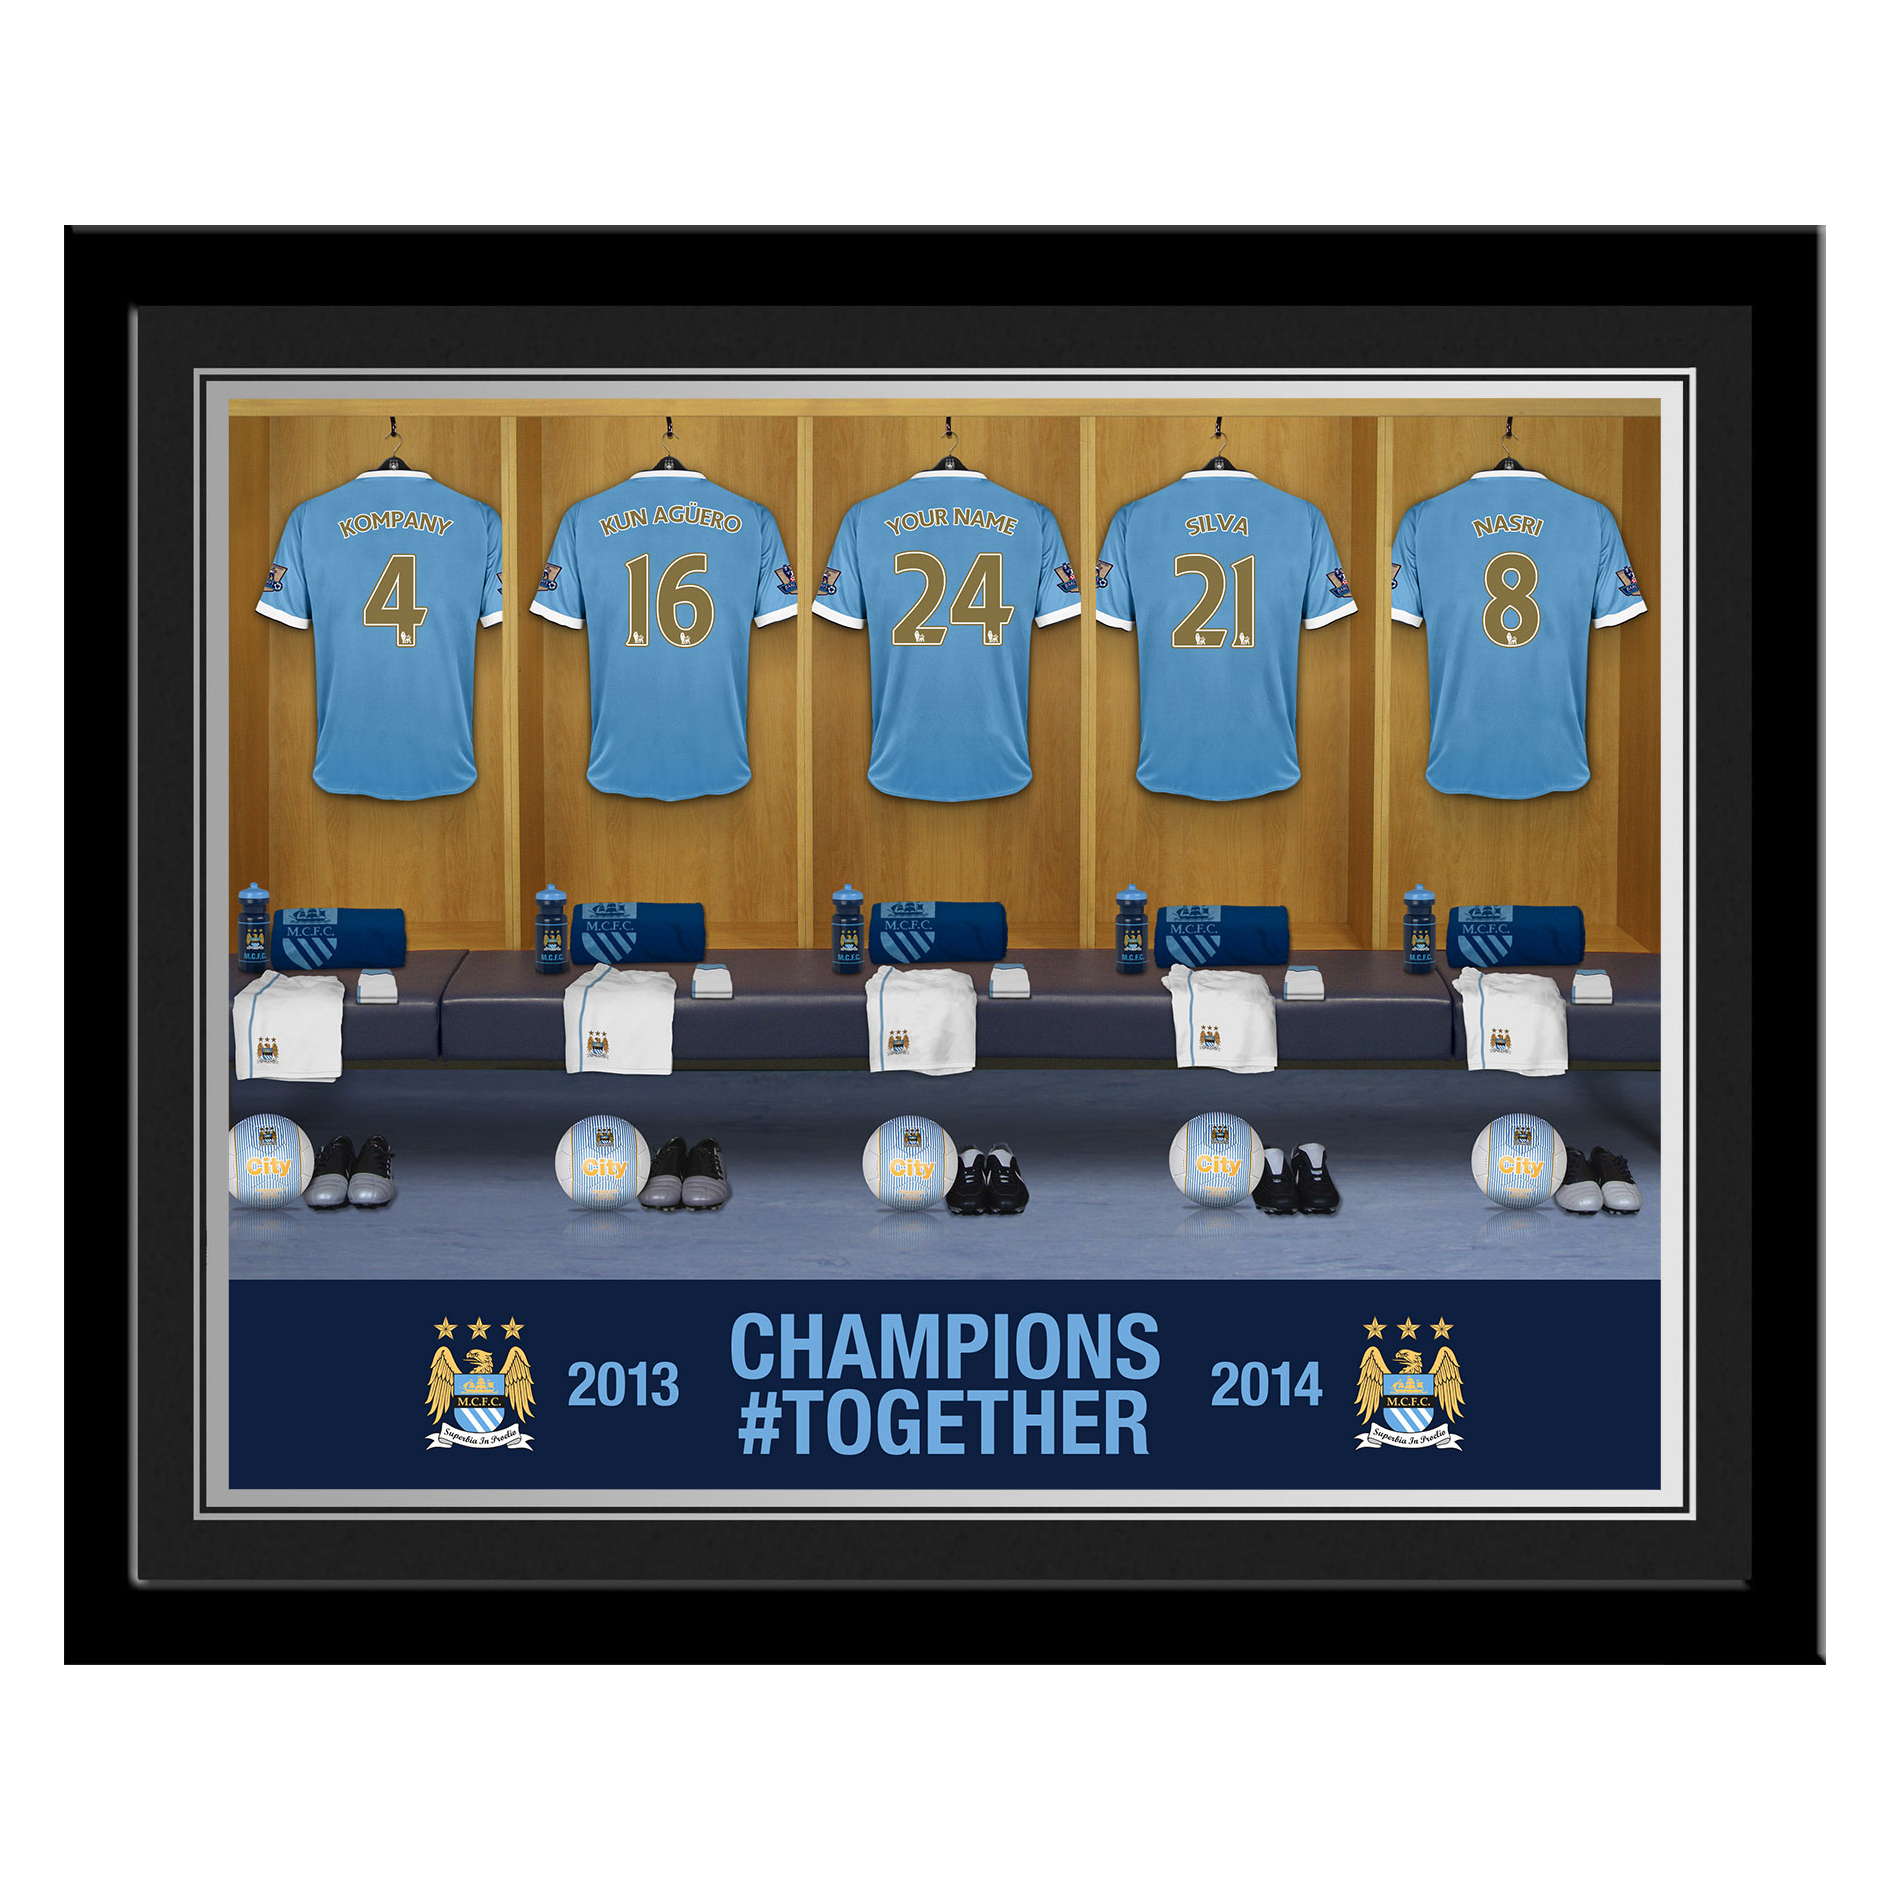 Manchester City Personalised Champions #Together Dressing Room Photo Framed 2013/2014